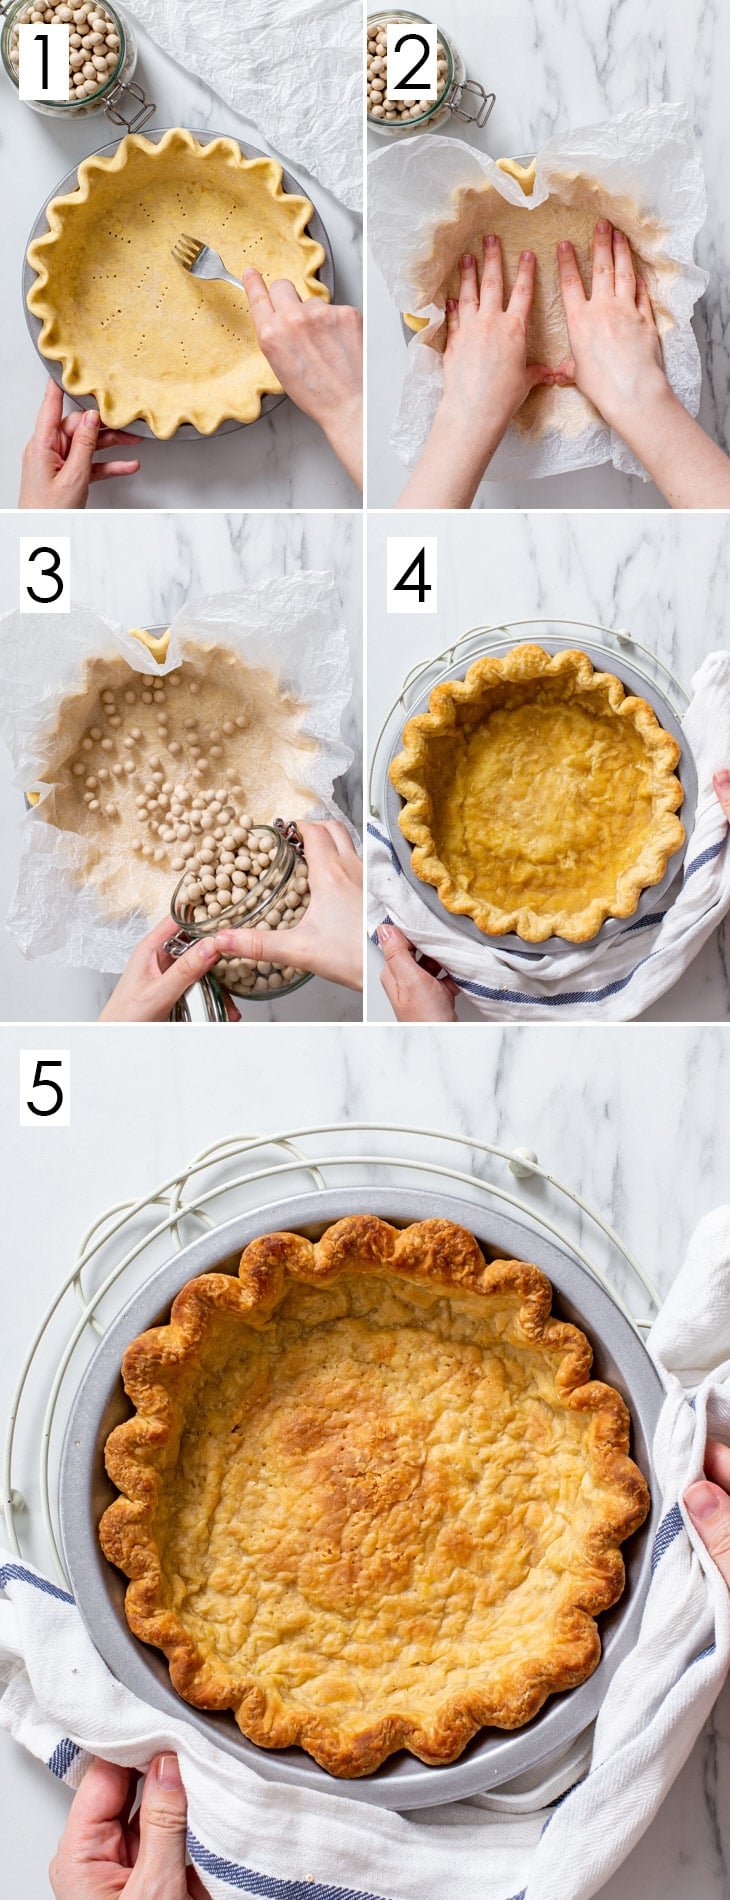 The 5-step process of blind baking the vegan pie crust.